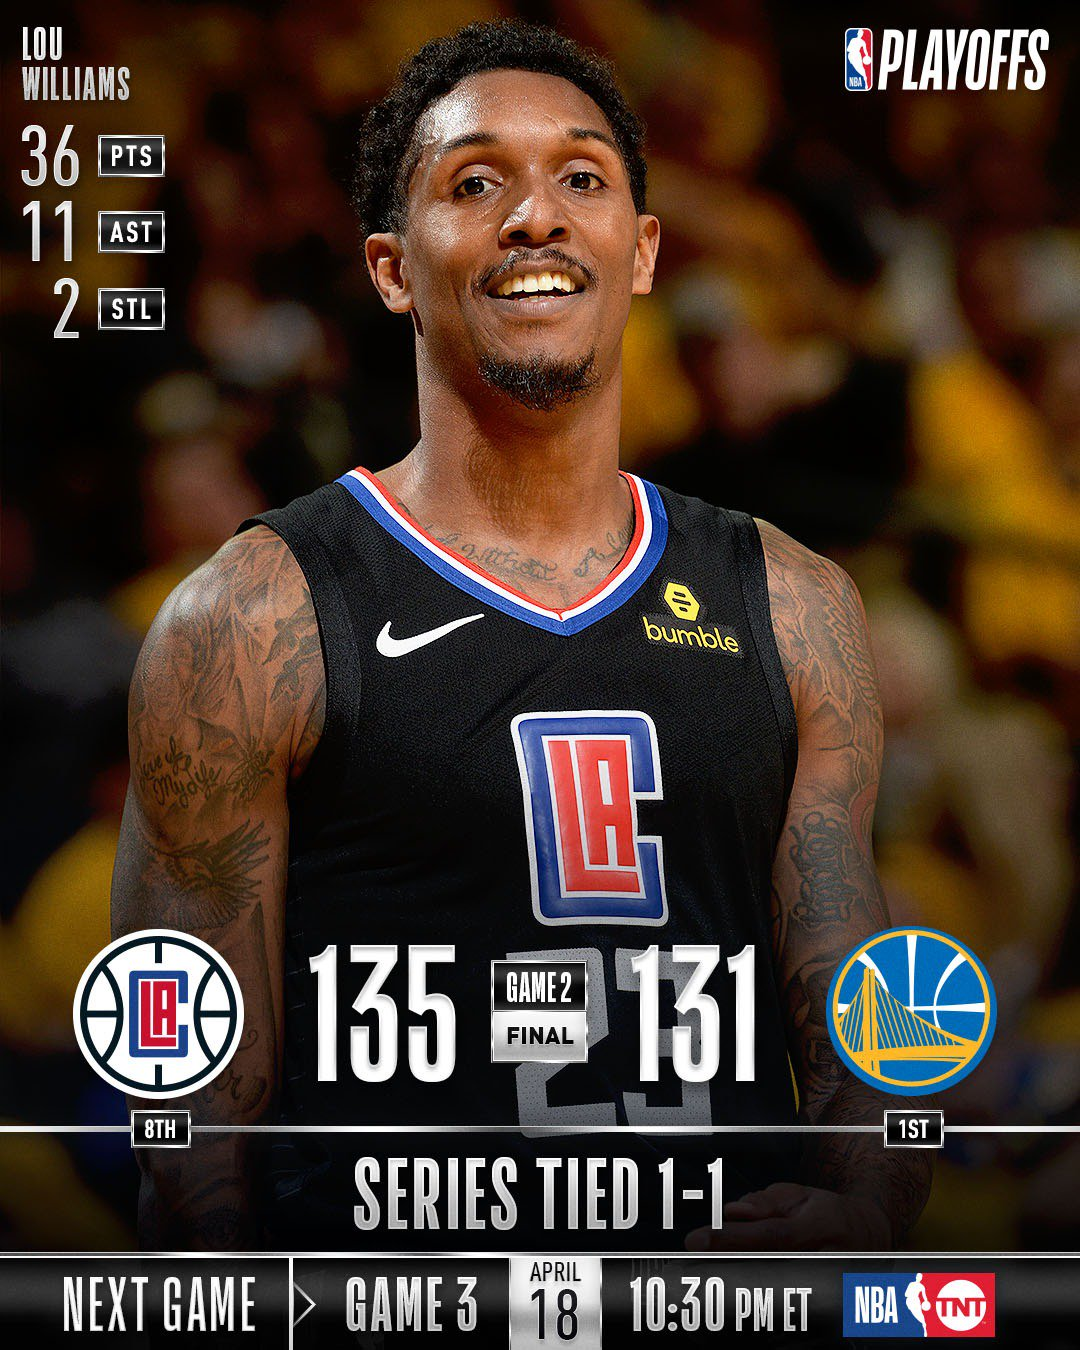 The @LAClippers head back home tied at 1-1!  Game 3: Thursday (4/18), 10:30pm/et, TNT  #NBAPlayoffs #ClipperNation https://t.co/pGc5Rr7Ory